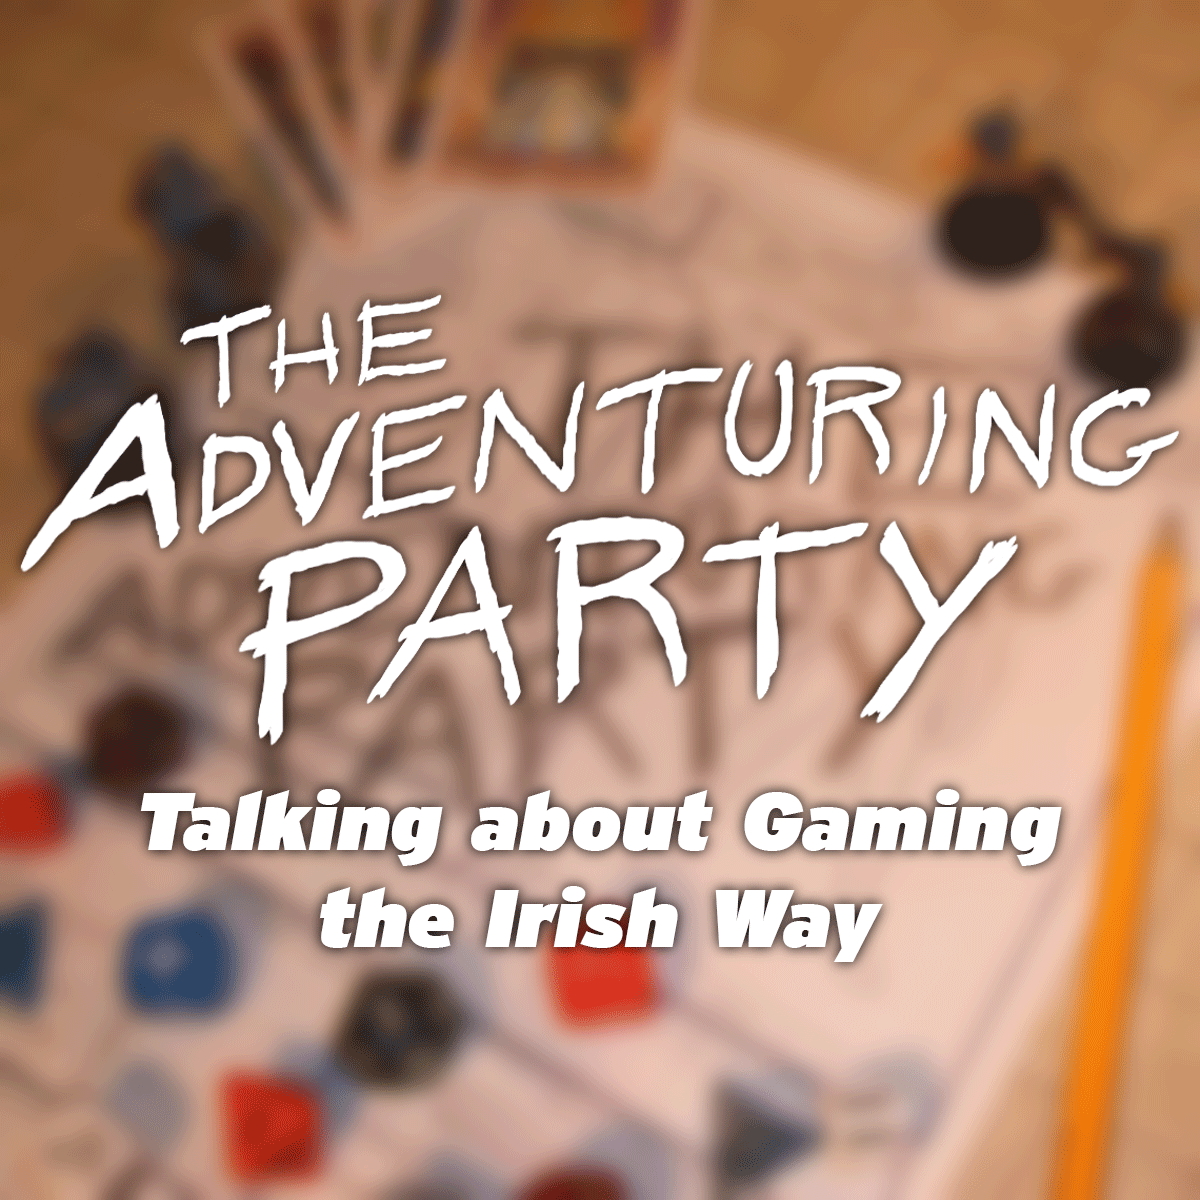 Artwork for GP, June 2009: The Adventuring Party Convention Awards 2008-2009